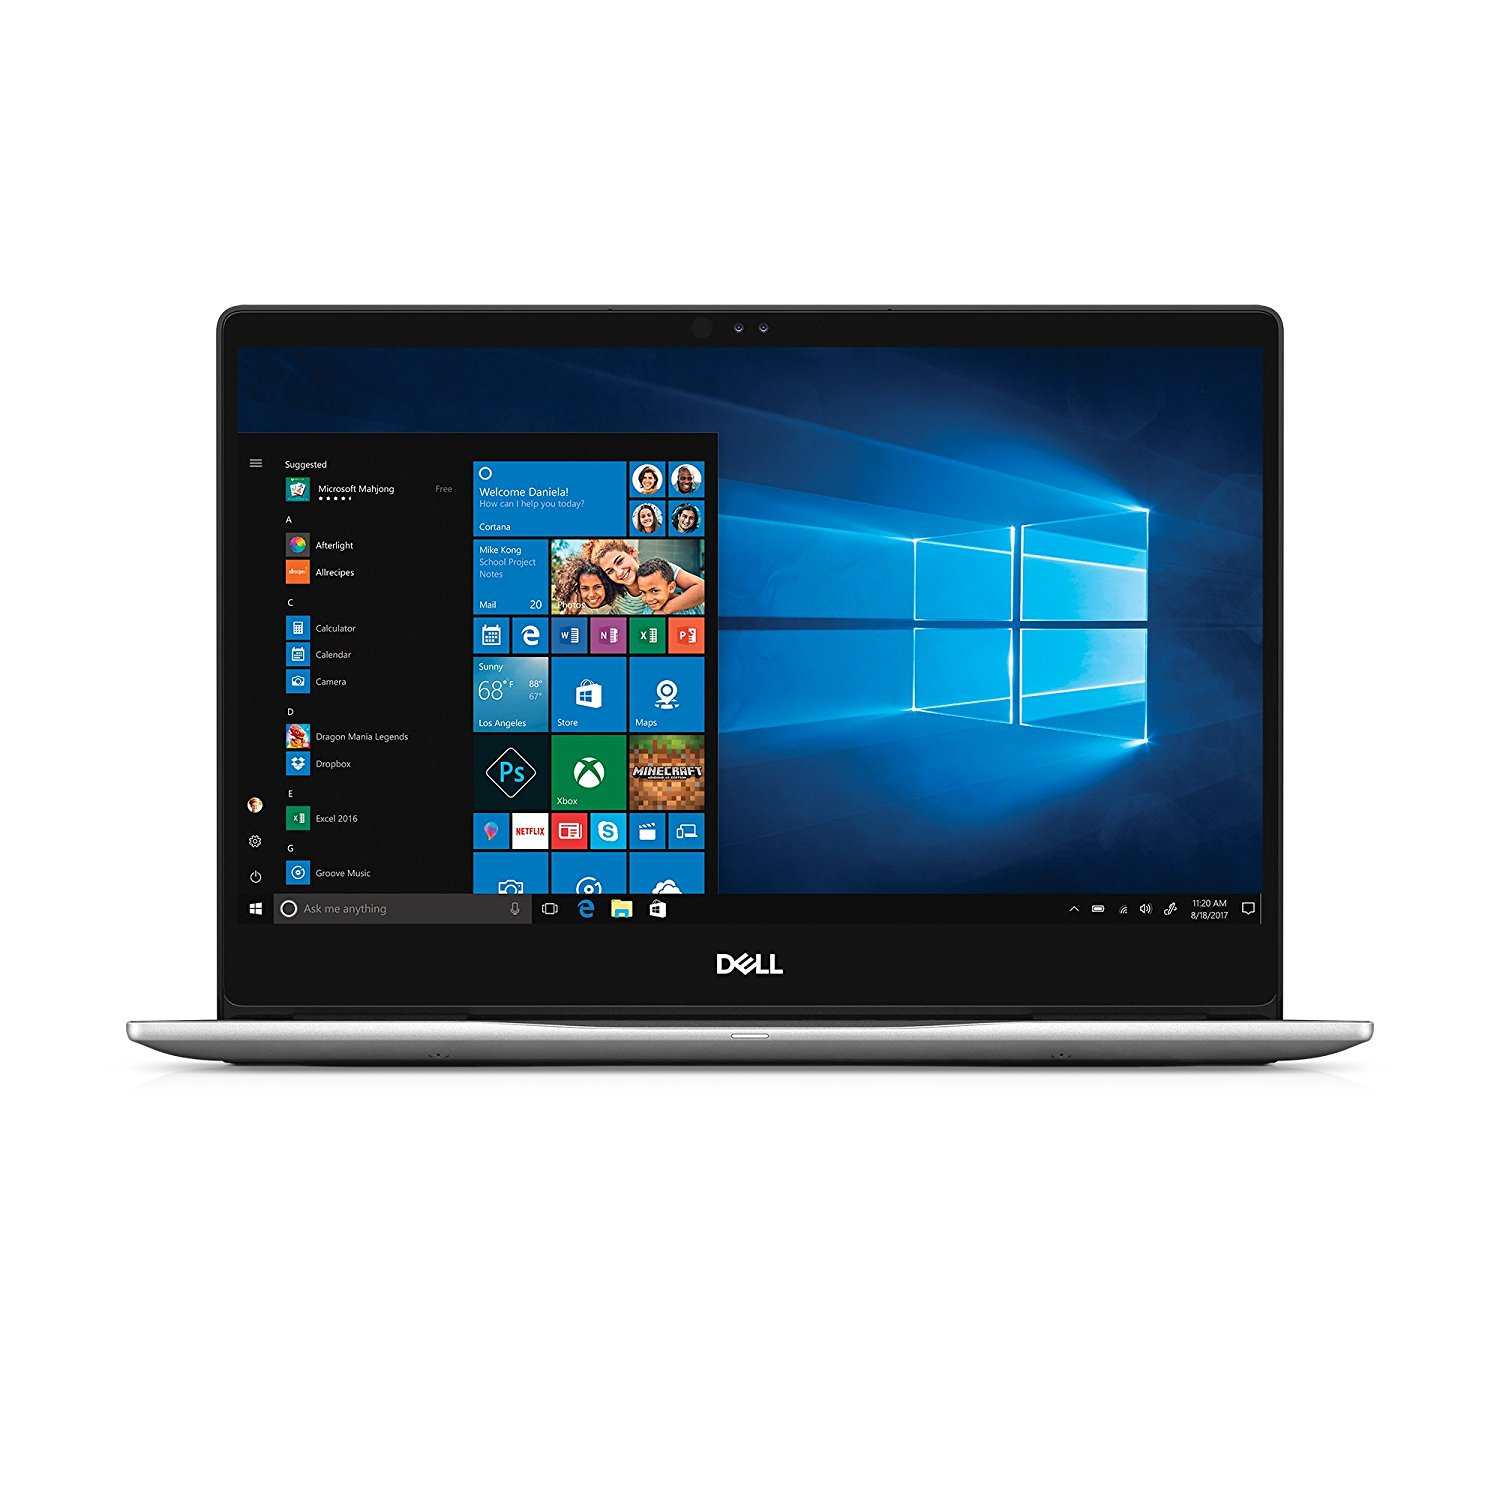 Dell Inspiron 7370 Core i5-8250U | Core i7-8550U Touch Display Windows 10